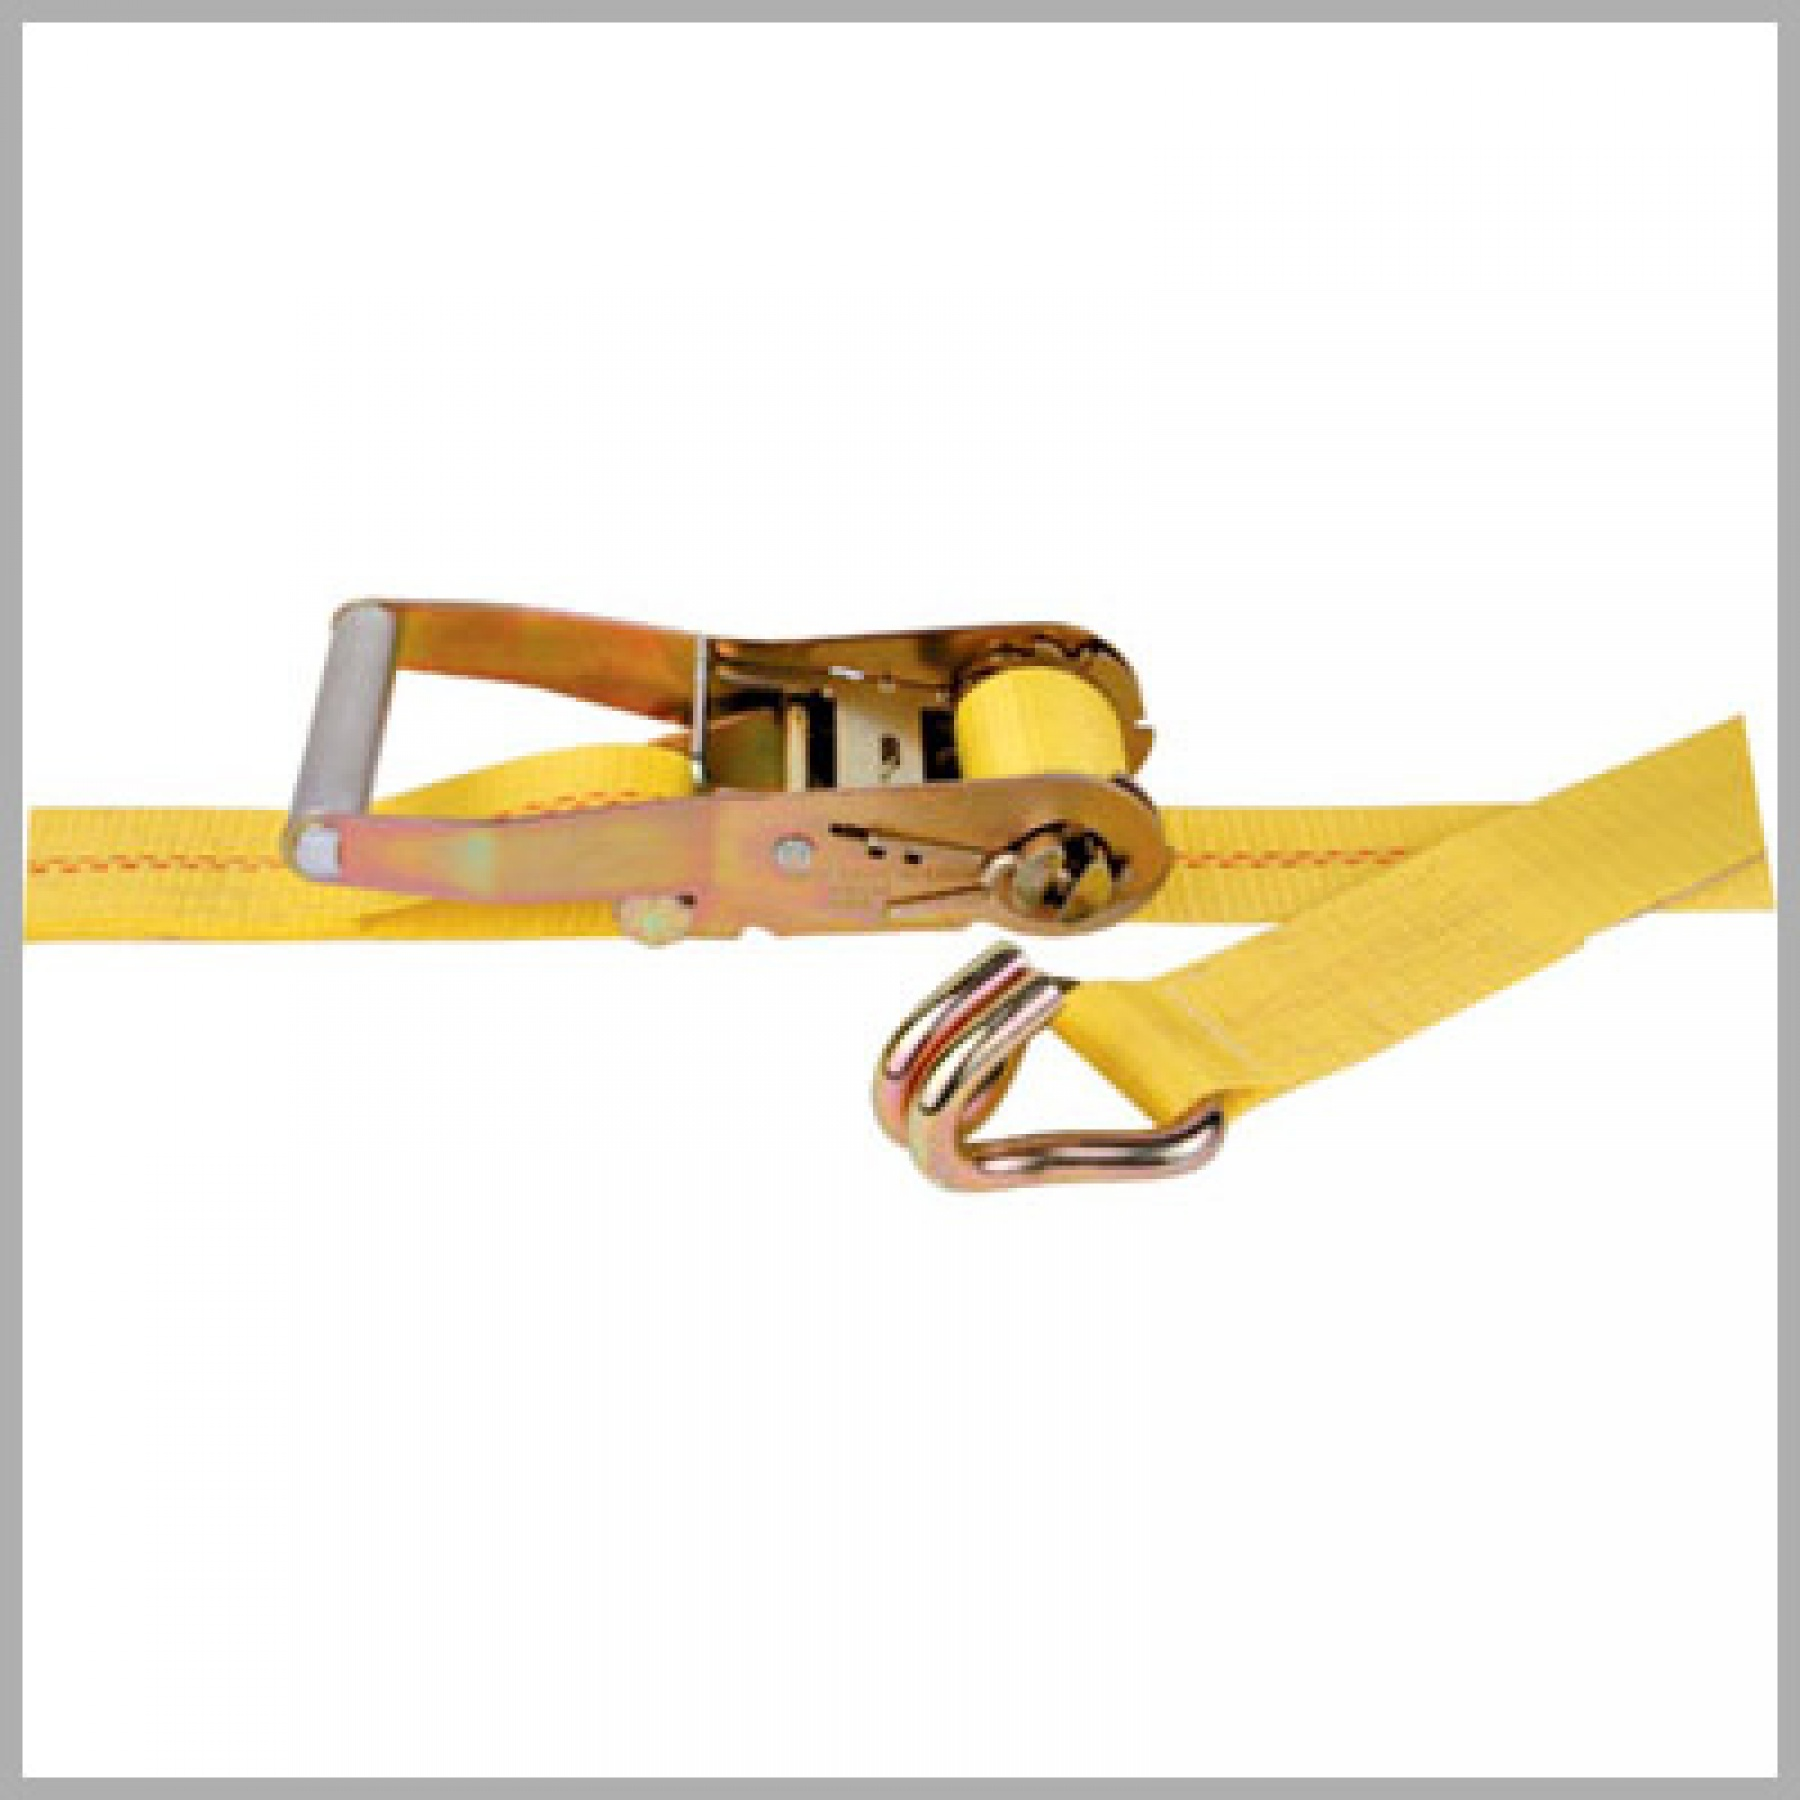 Binders & Slings From Safety